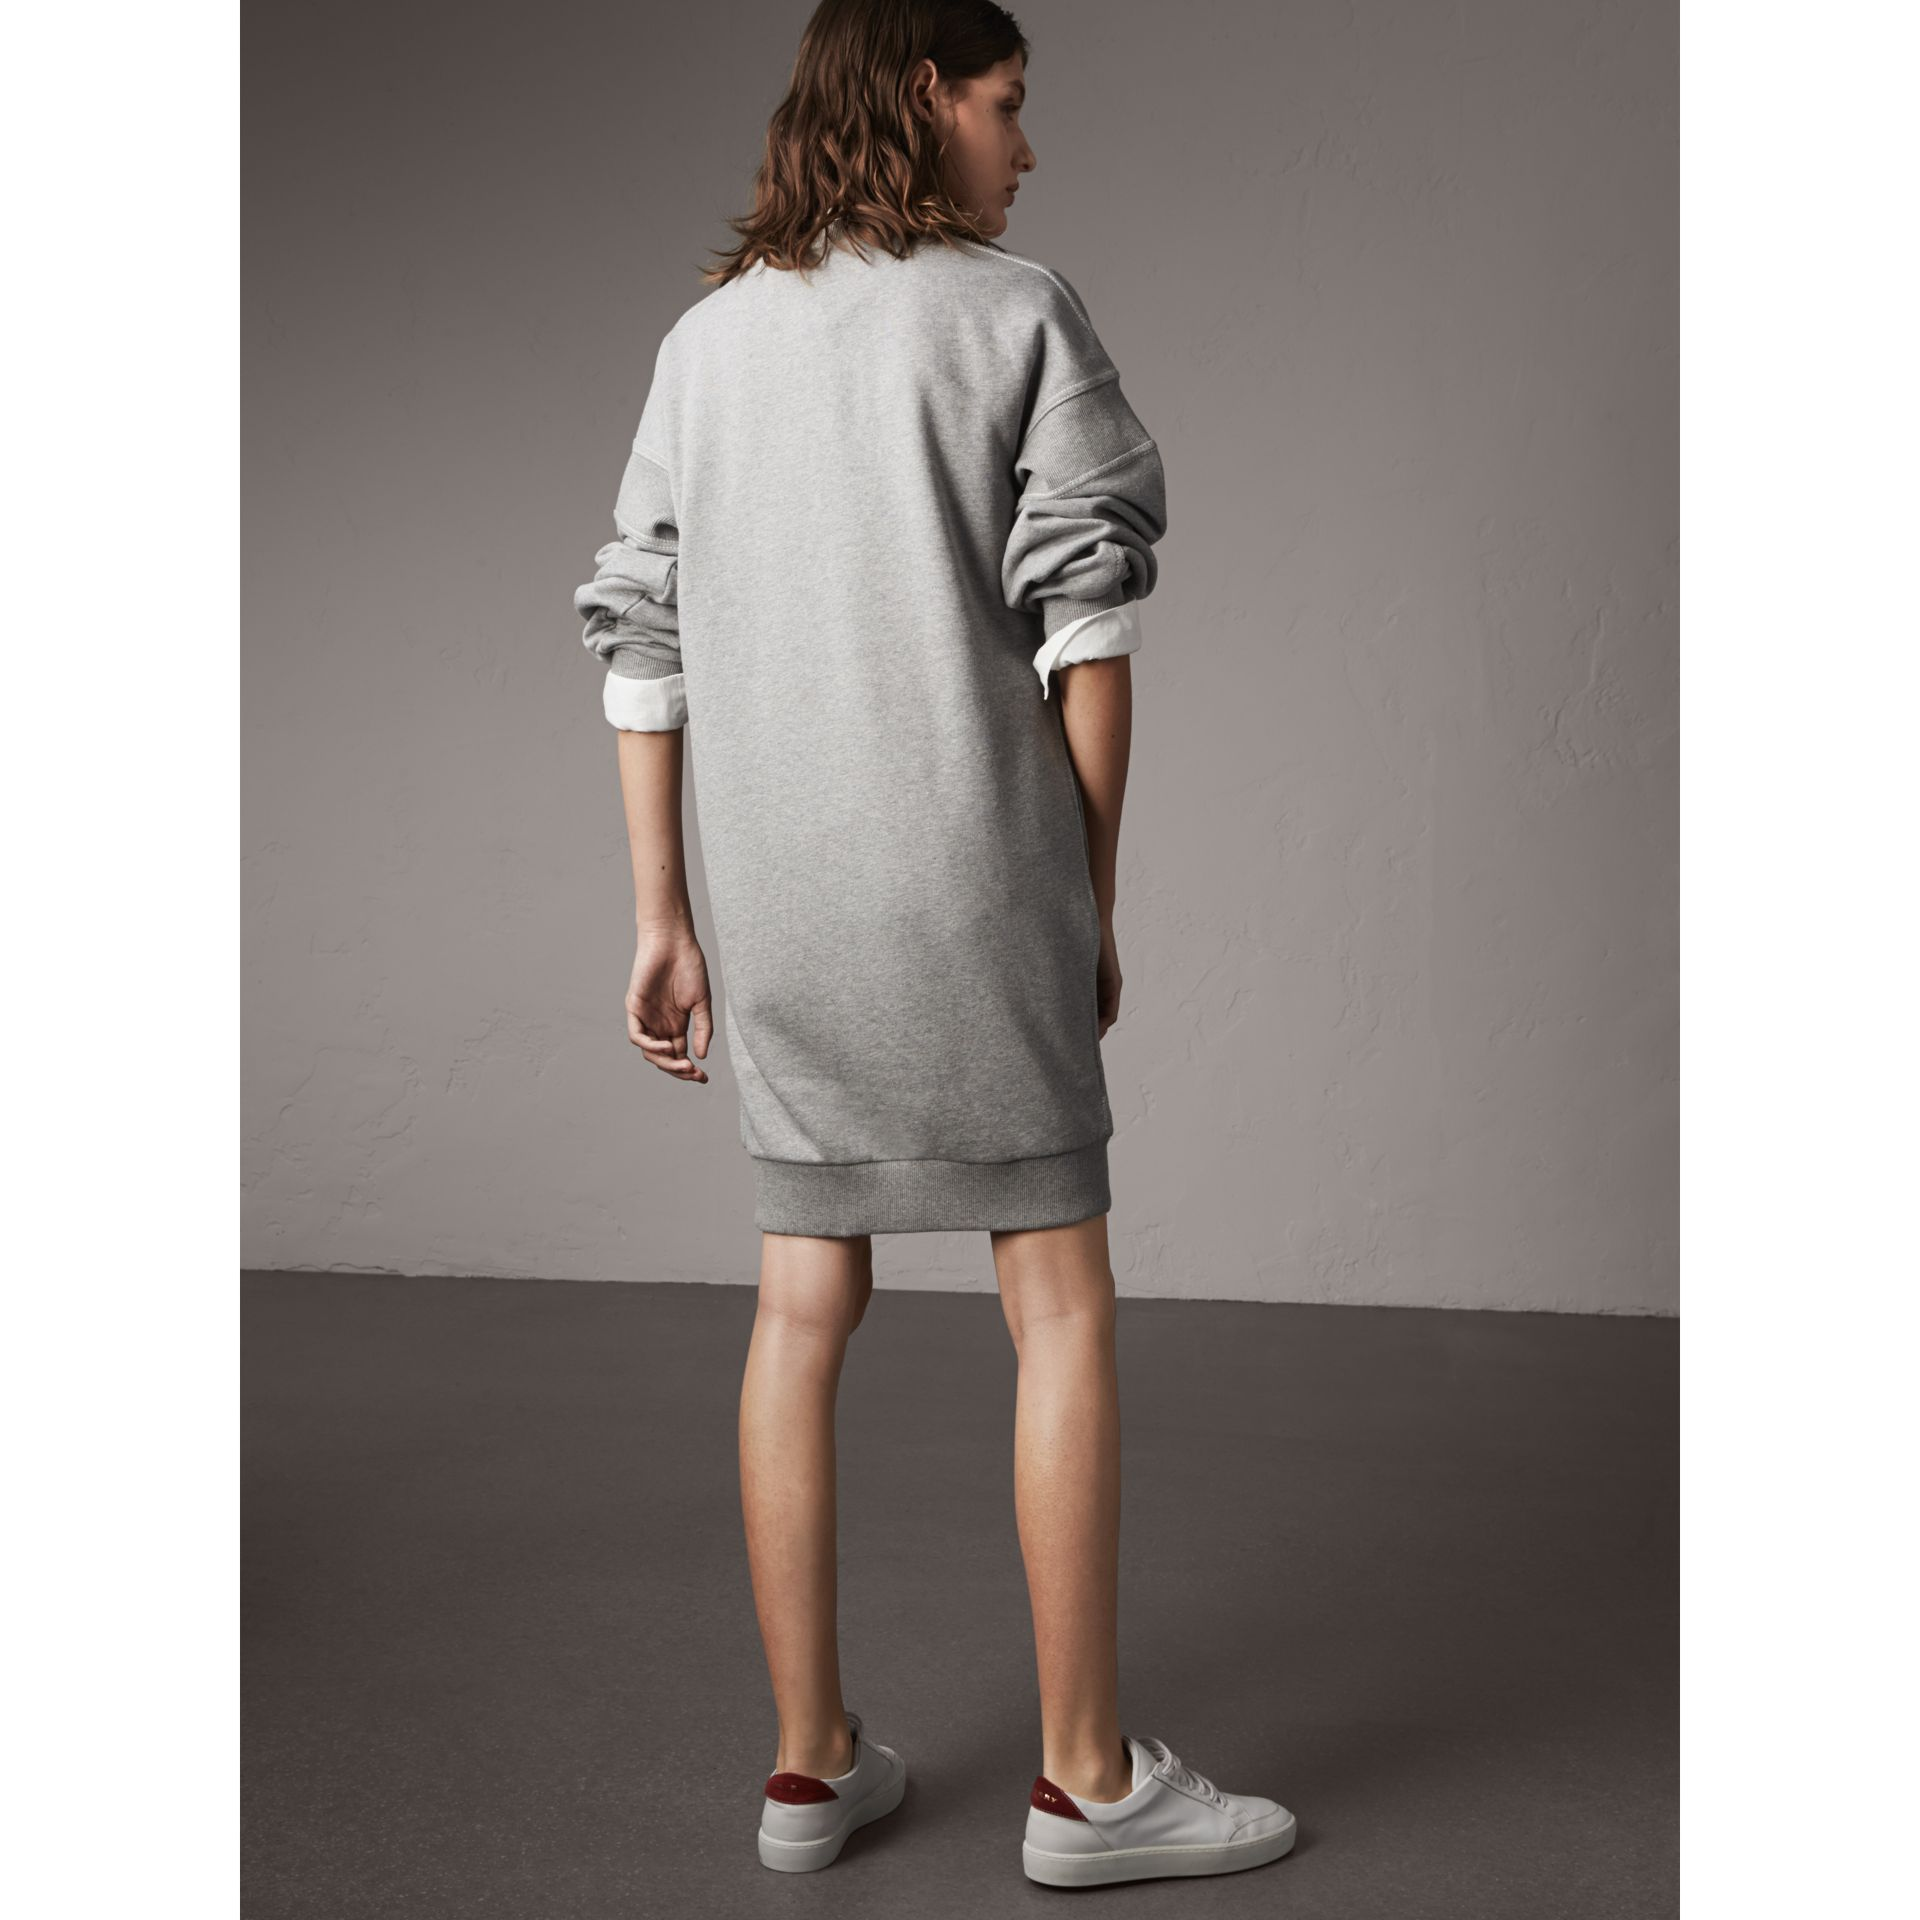 Embroidered Motif Cotton Jersey Sweatshirt Dress in Pale Grey Melange - Women | Burberry - gallery image 2